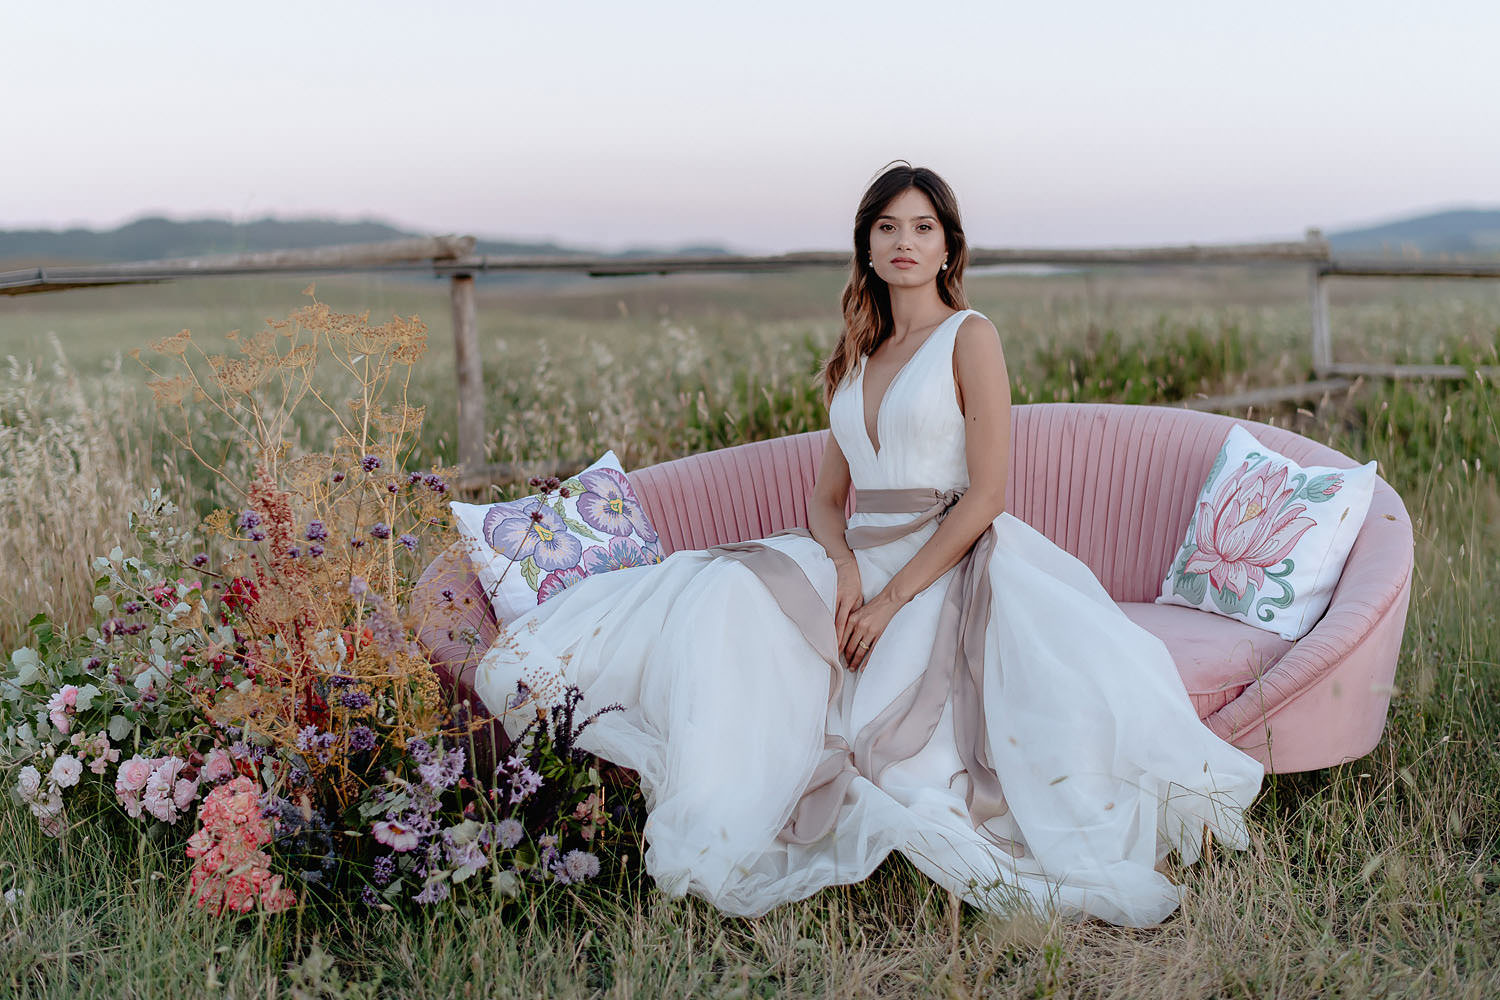 editorial intimate Wedding Inspiration in Tuscan Rolling Hills bride sunset tuscan field sofa fascion vibe